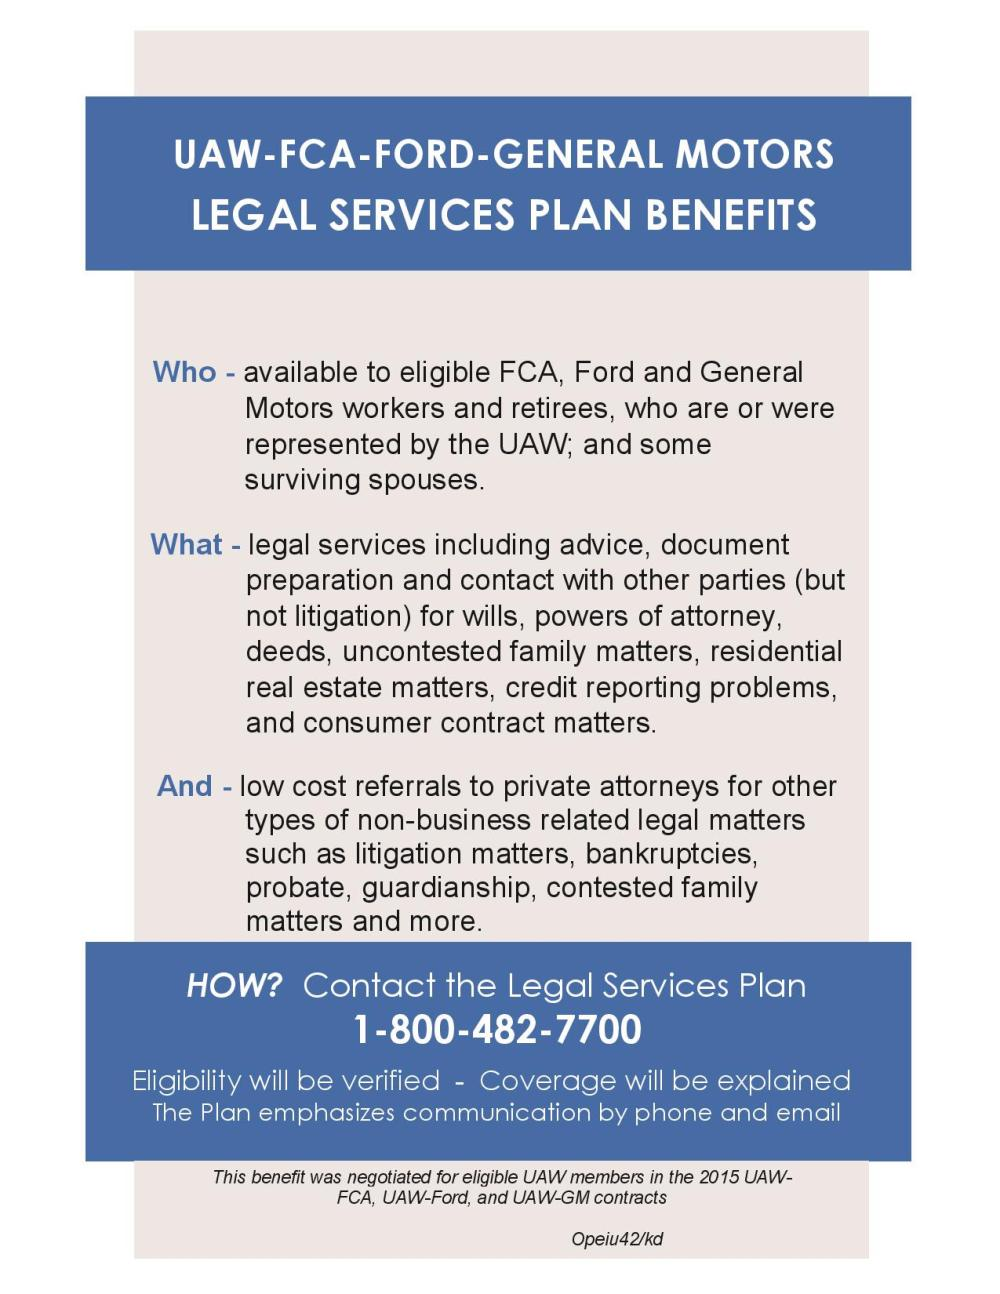 UAW – FCA – Ford – GM Legal Services Plan Benefits | uawgmtalks